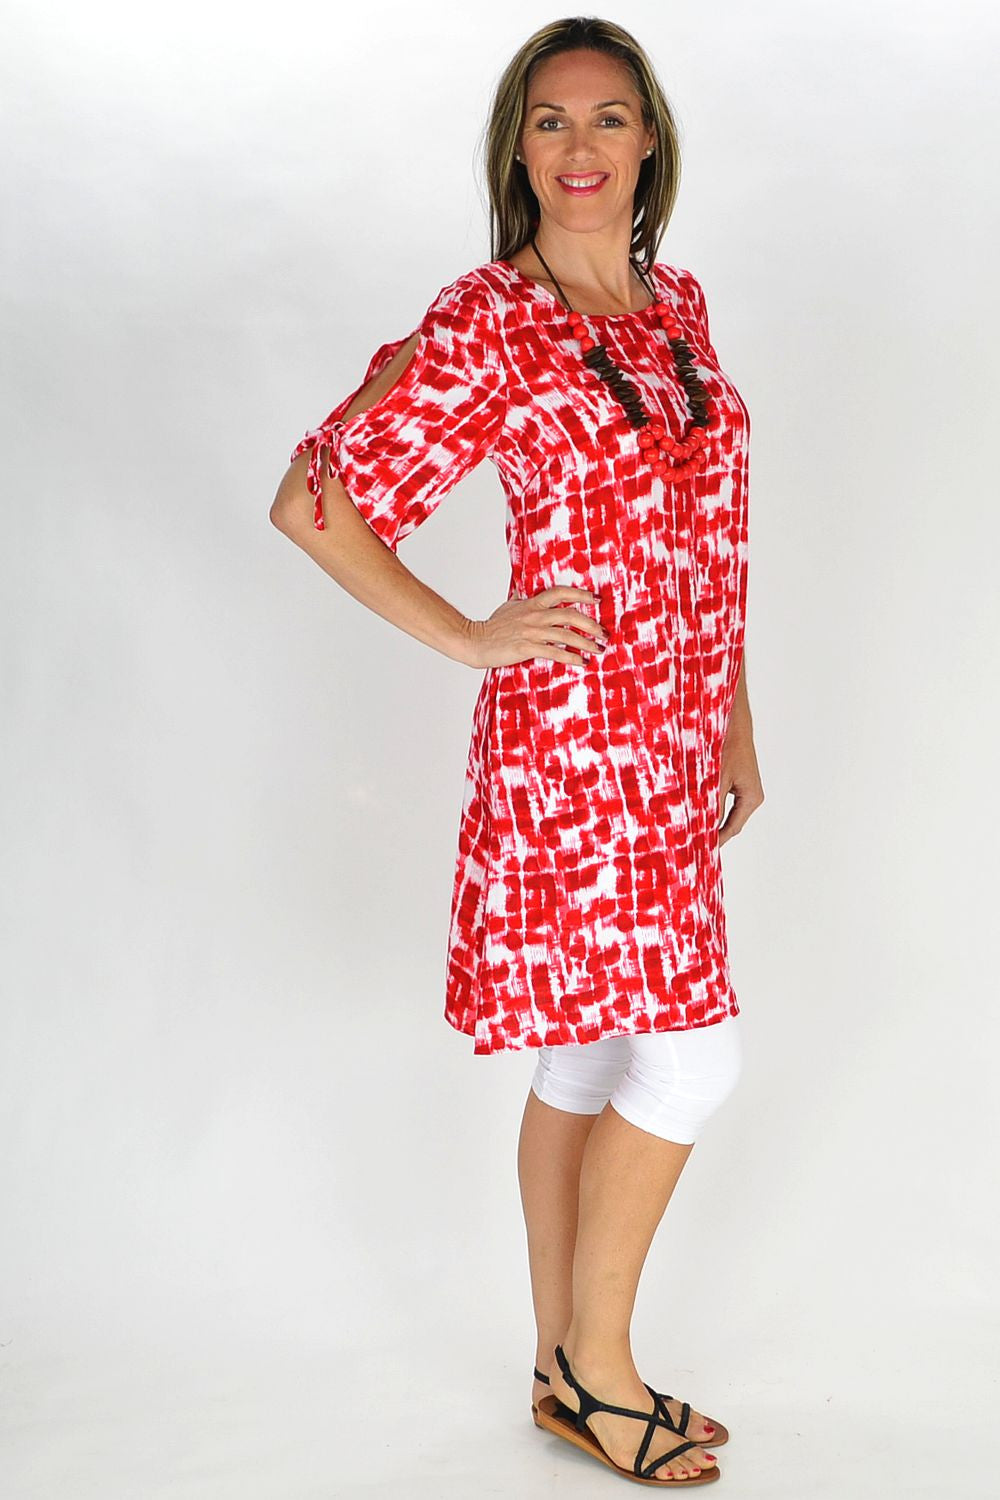 Red Relaxed Tunic - at I Love Tunics @ www.ilovetunics.com = Number One! Tunics Destination